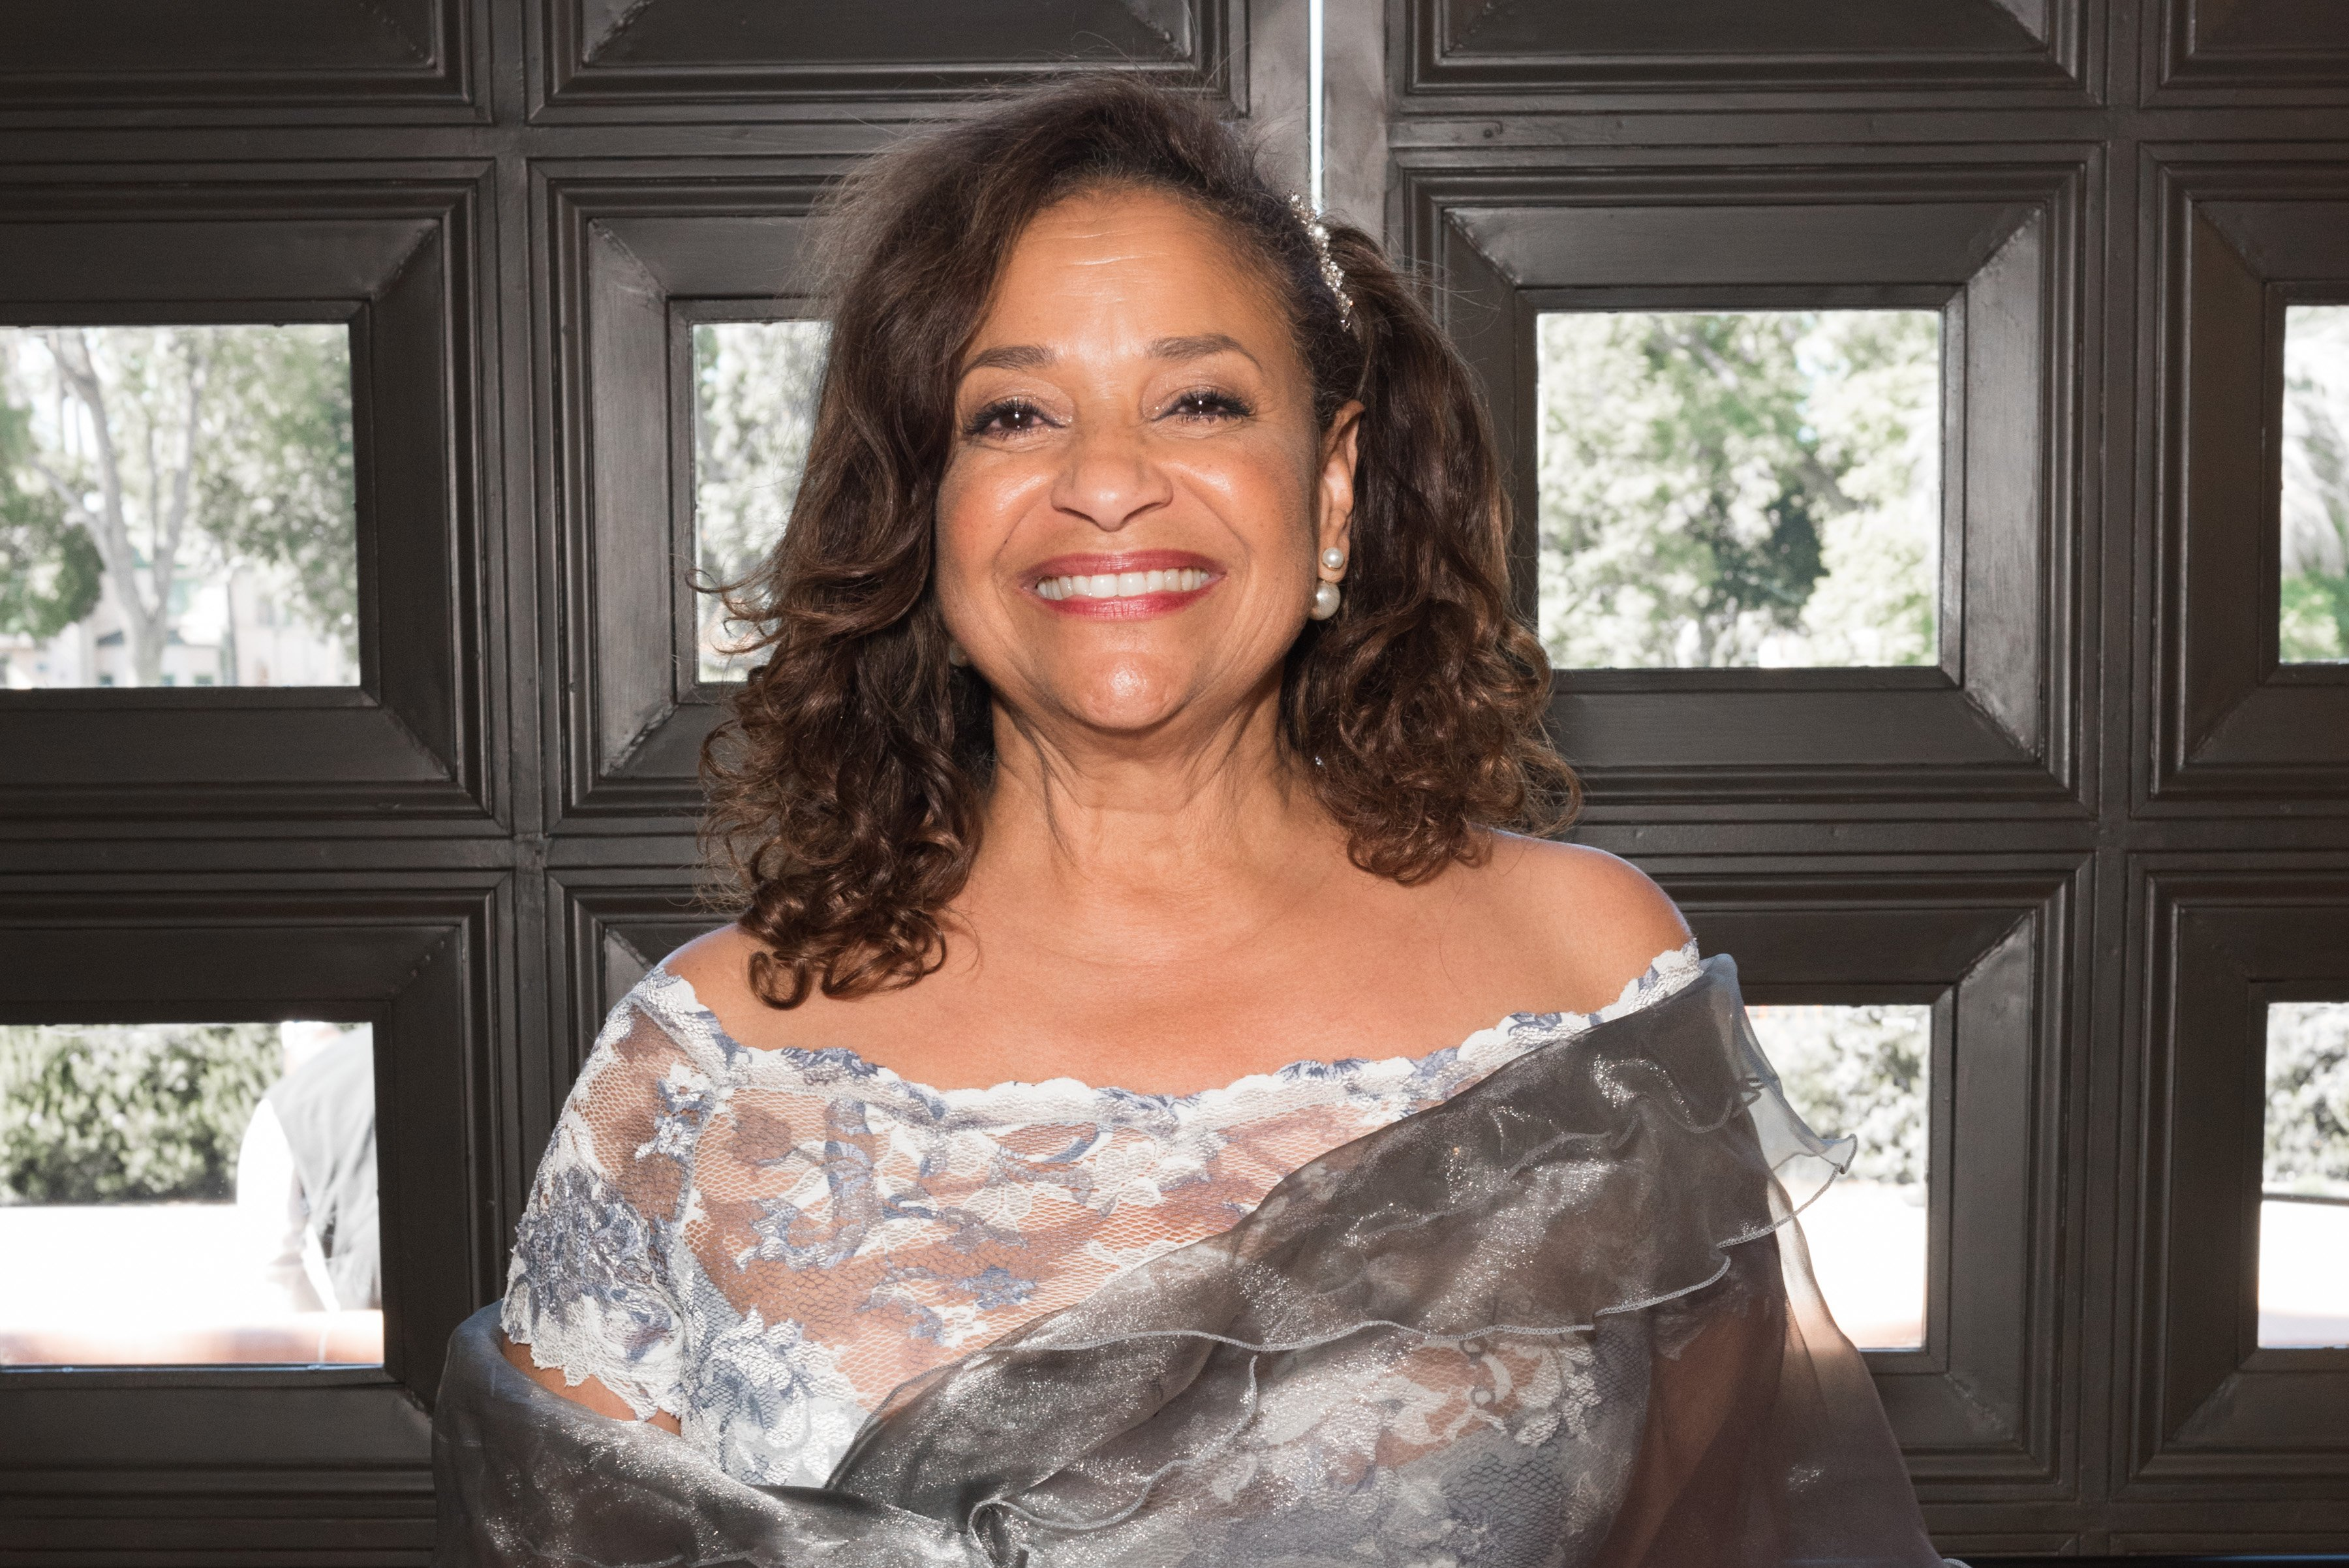 """Debbie Allen at the """"Turn Me Loose"""" - Red Carpet event at Wallis Annenberg Center for the Performing Arts on October 15, 2017 in Beverly Hills, California. 